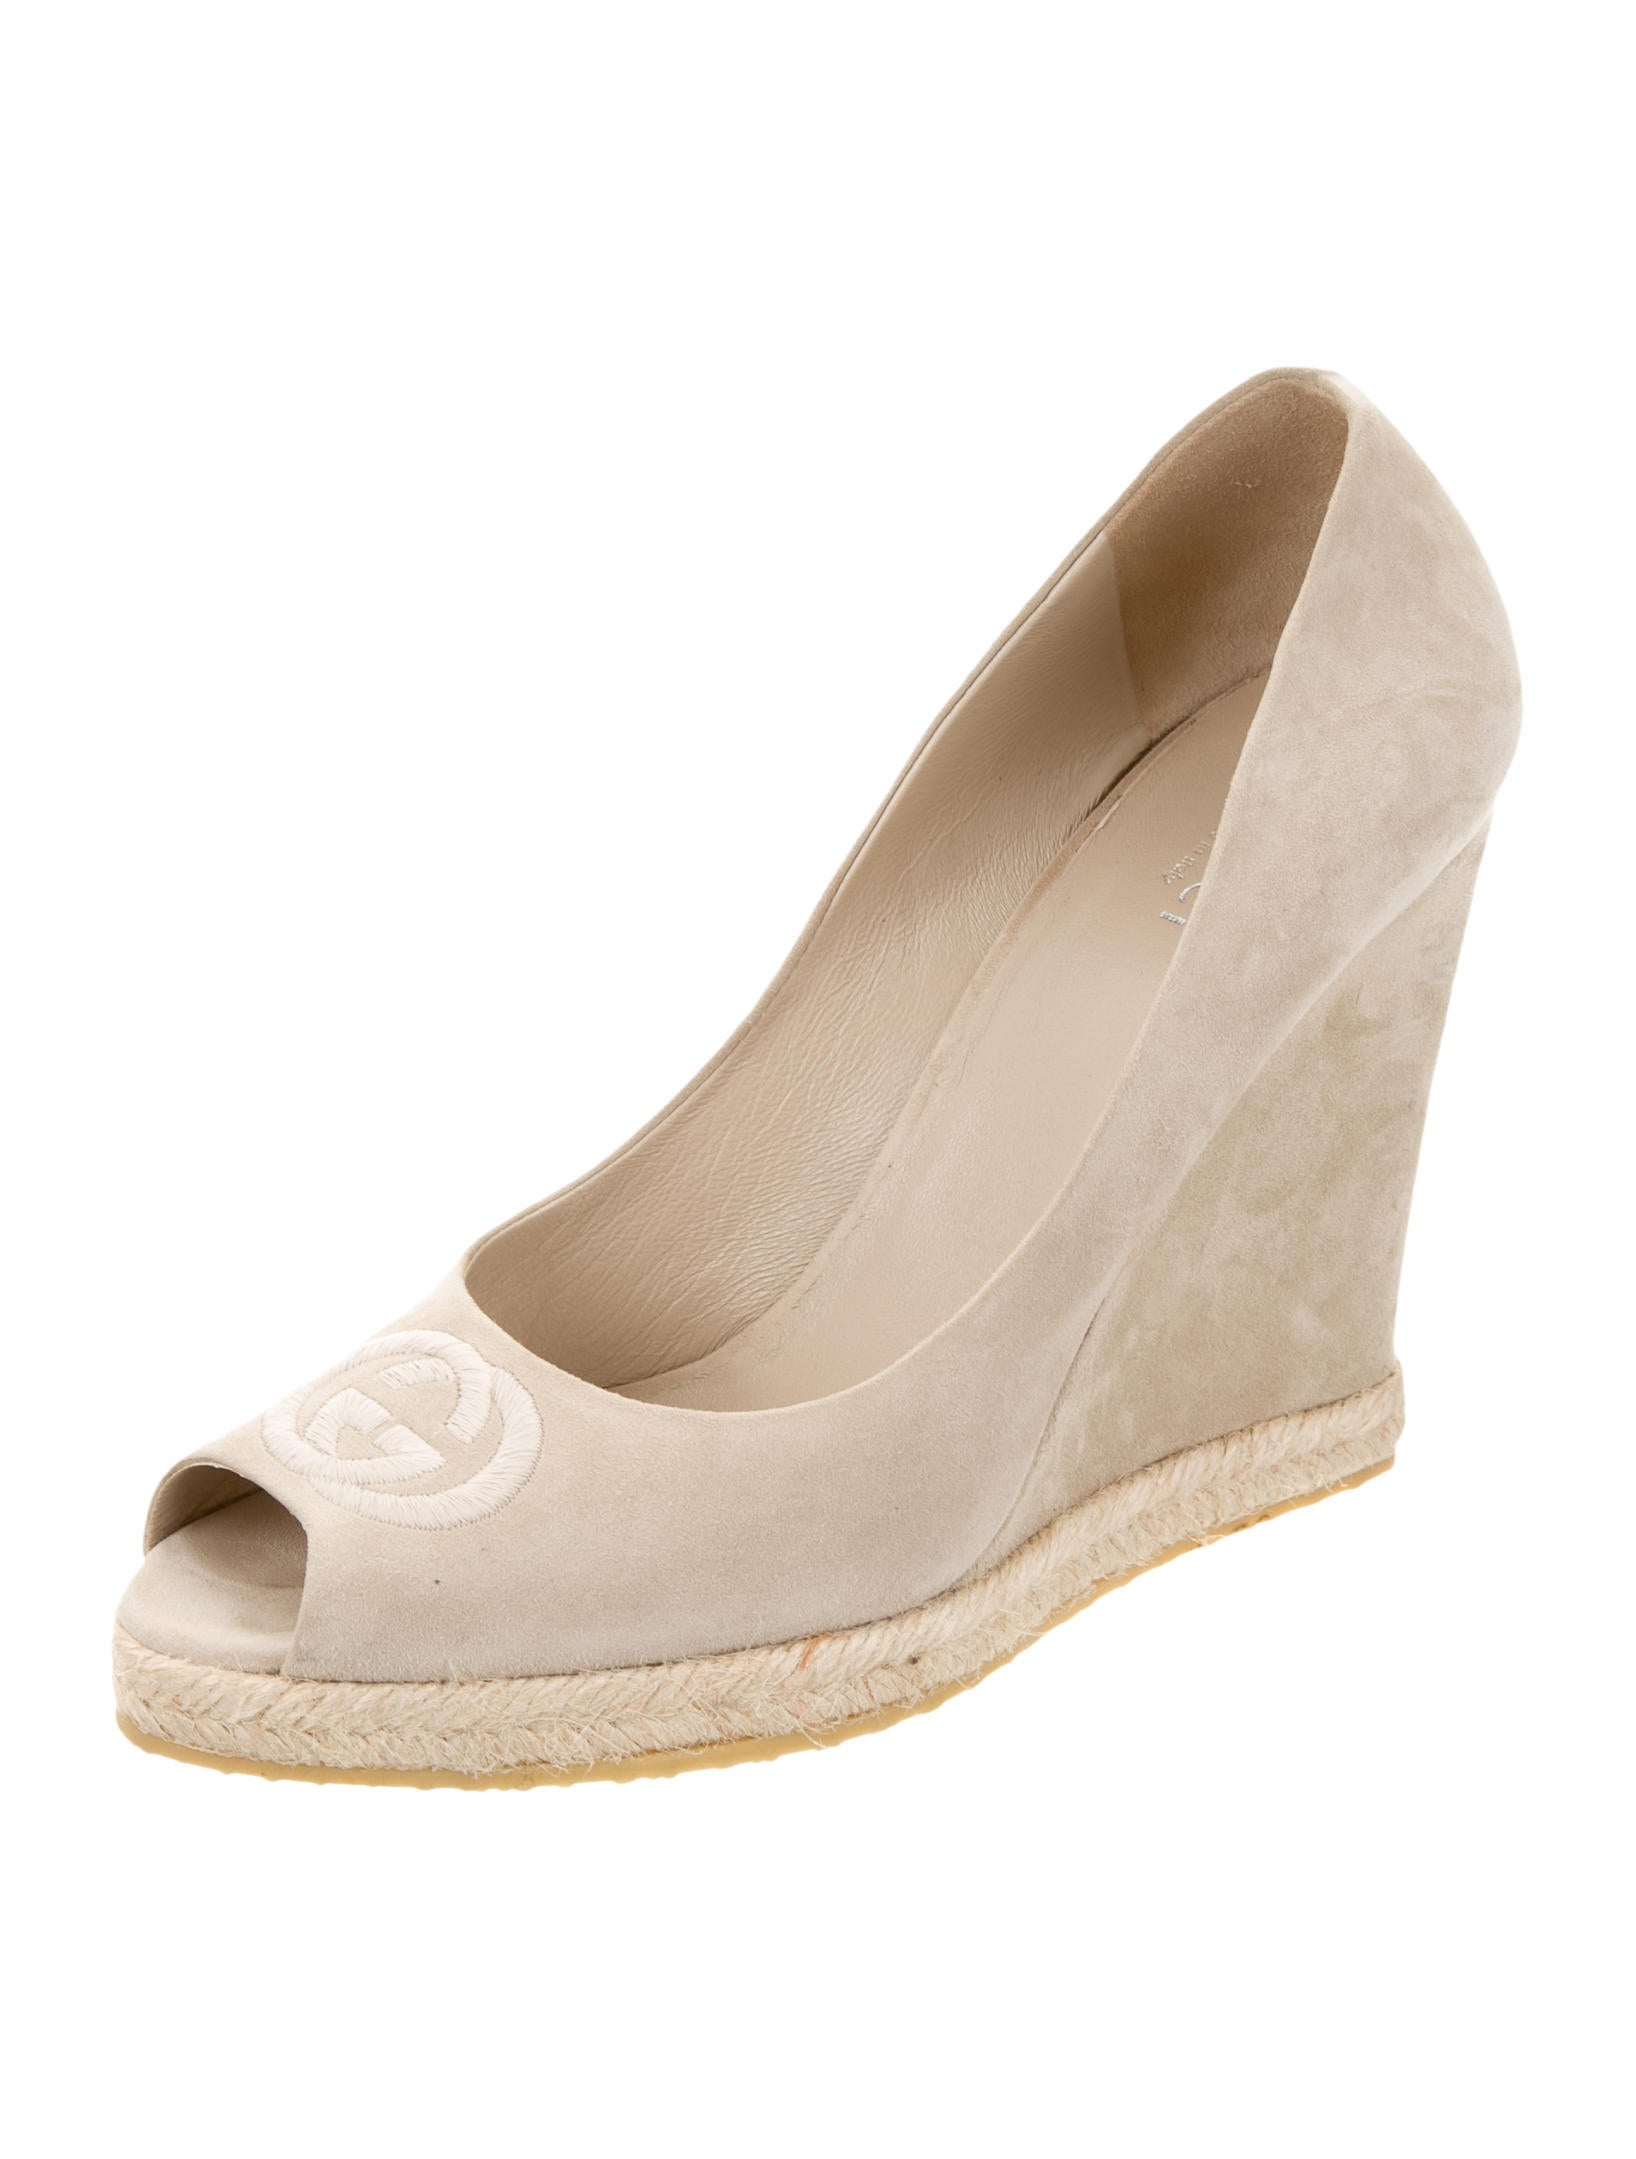 gucci gg peep toe wedges shoes guc113050 the realreal